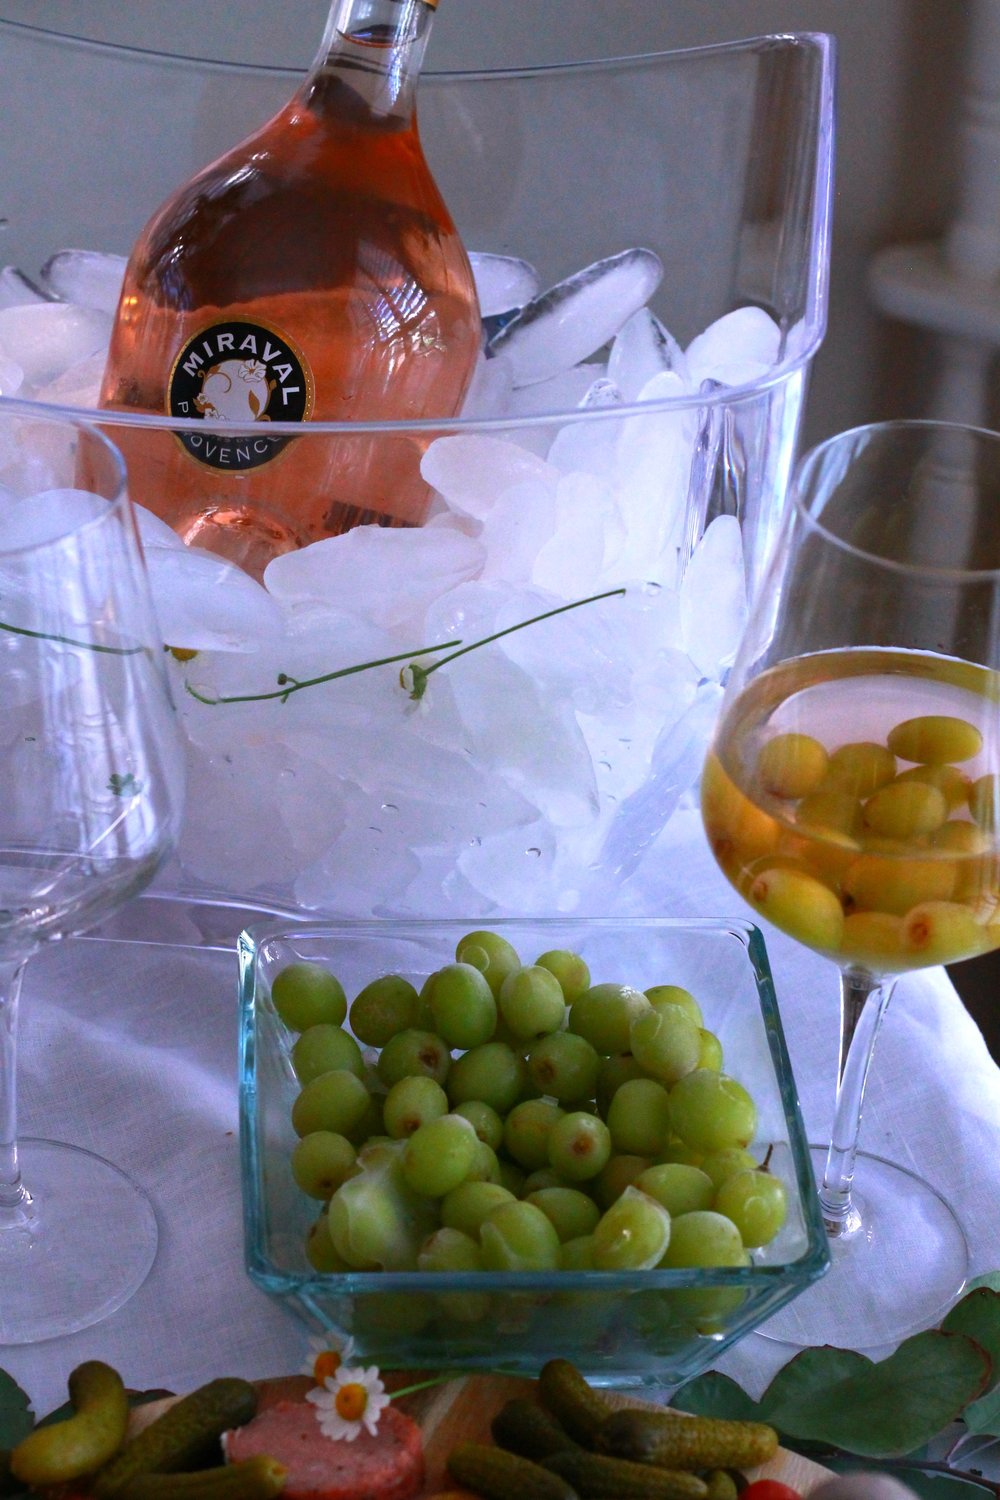 Grape Ice Cube-Grape and Wine-Rose-Wine Night-Cheese and Cracker Ideas-Girls Night In-Cheese Cracker and Wine Night-Cheese Board Ideas-www.SugarPartiesLA.com.jpg